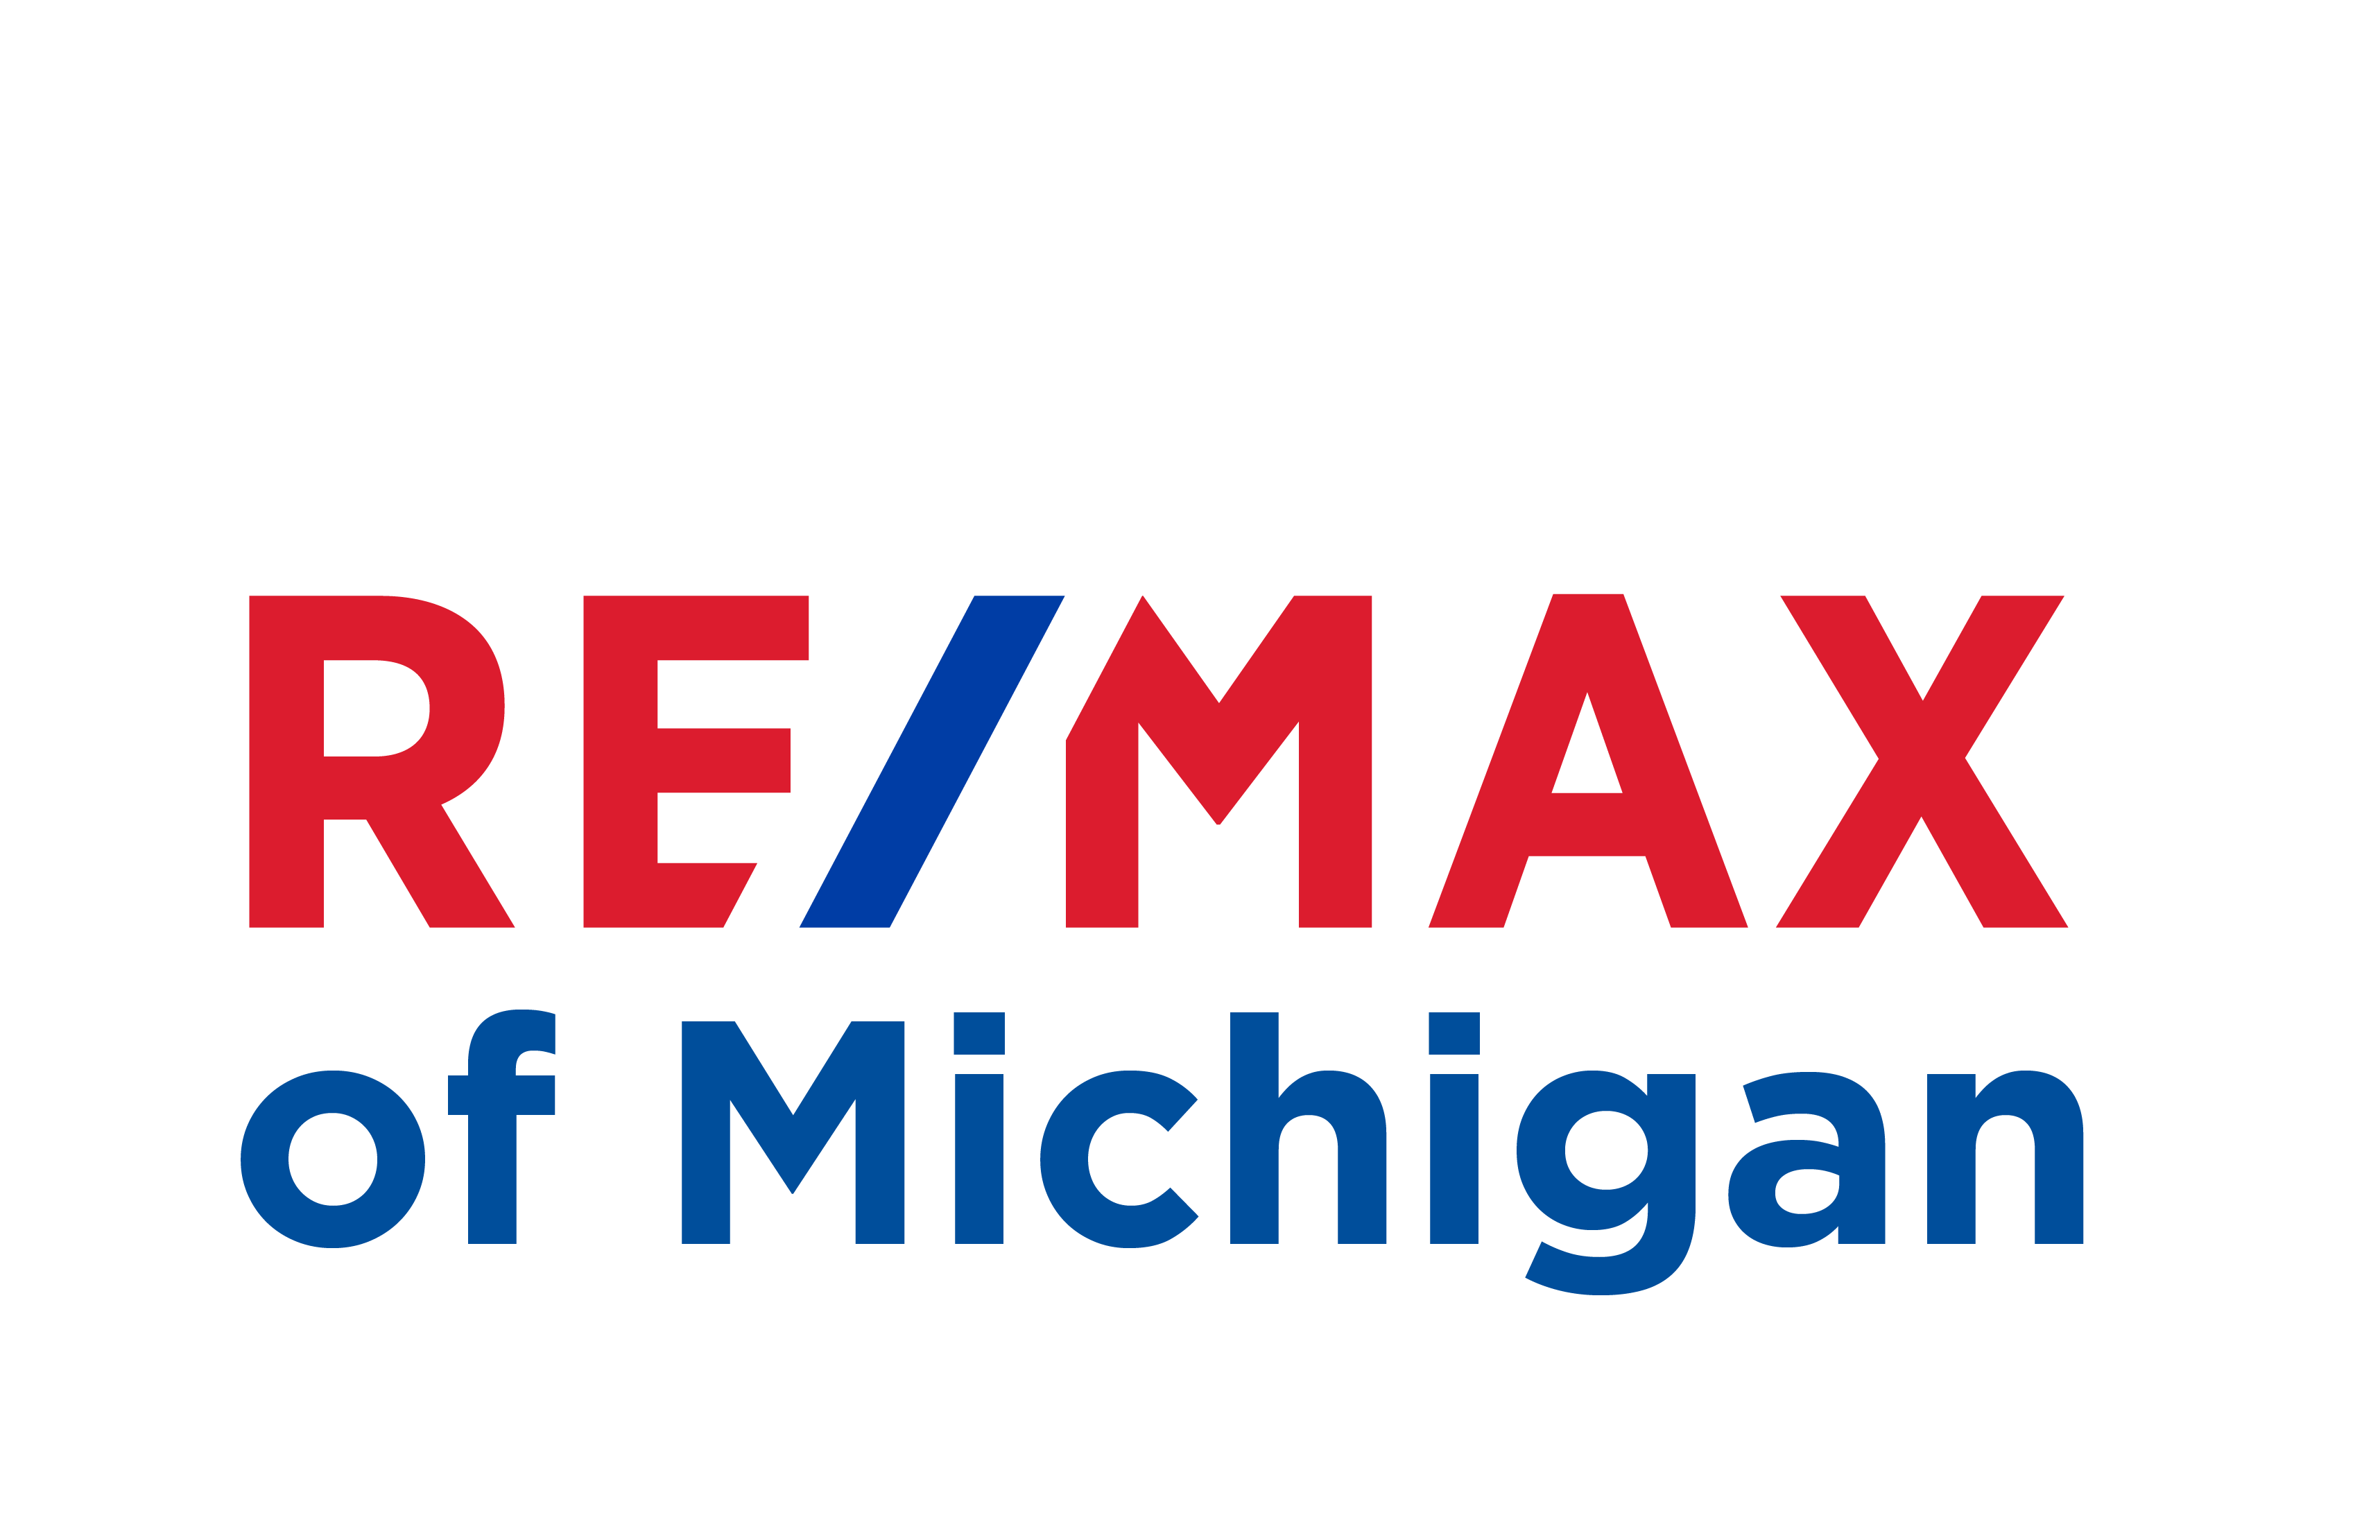 REMAX of Michigan